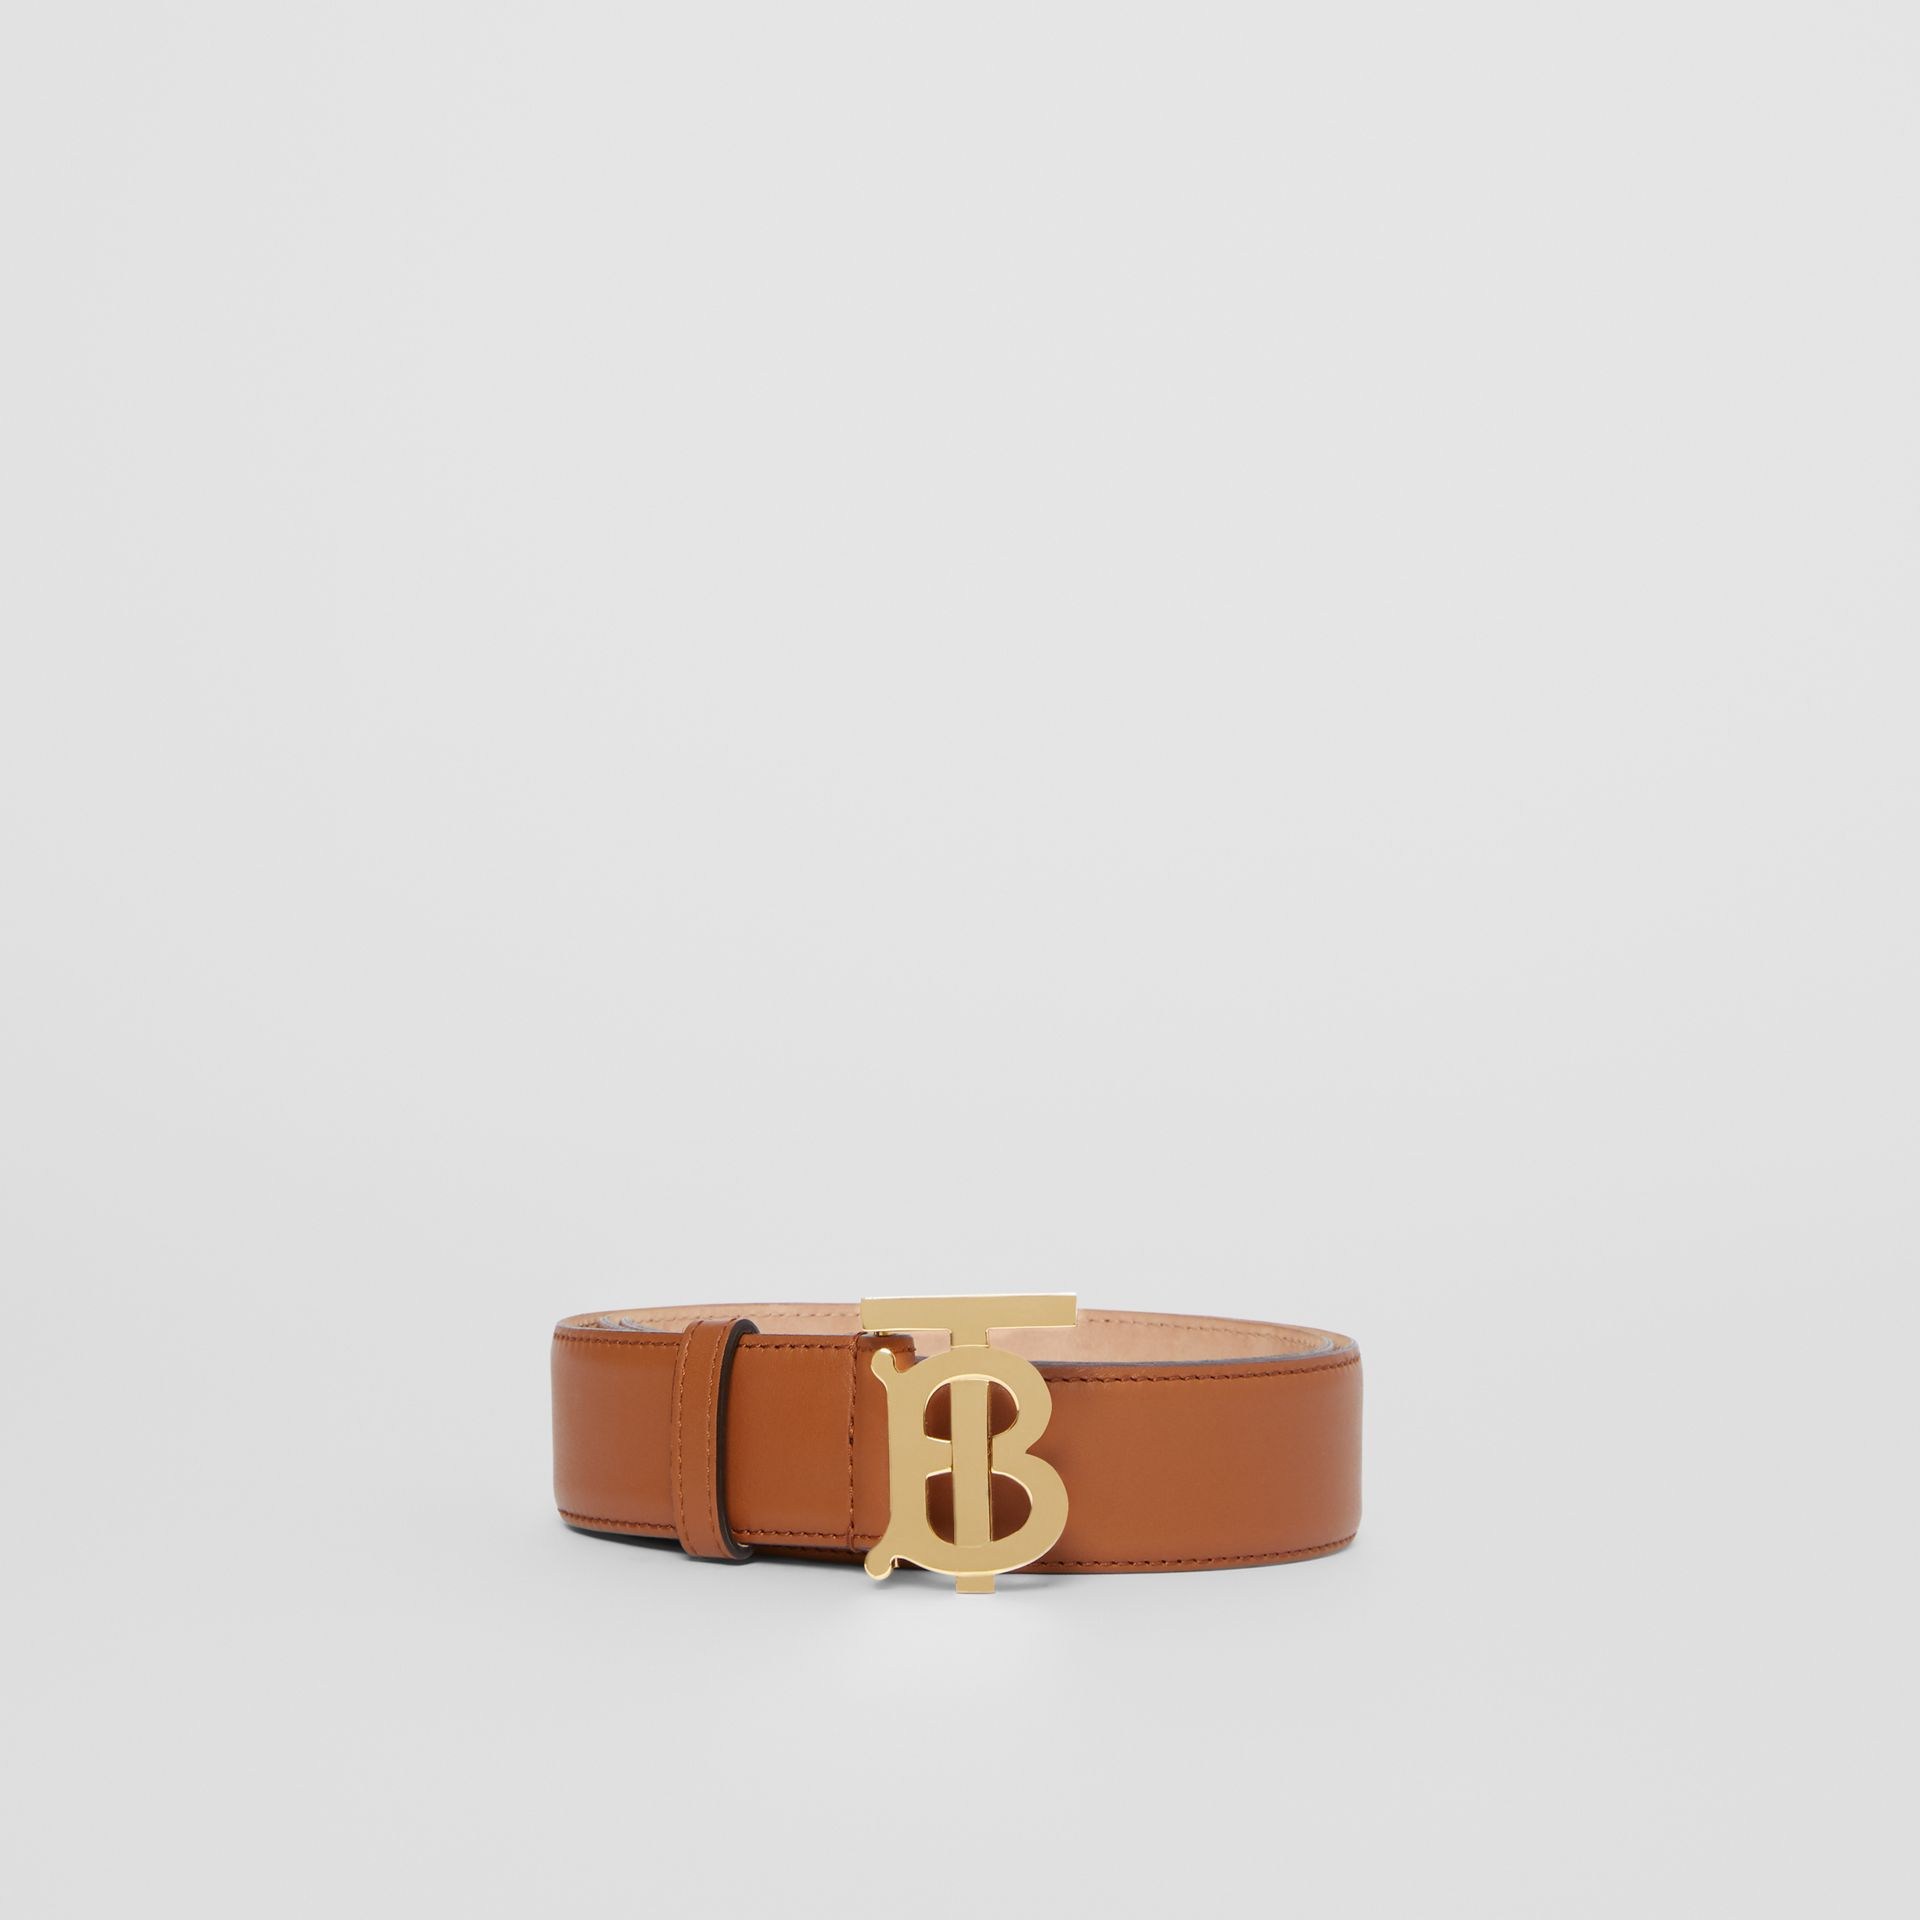 Monogram Motif Leather Belt in Tan - Women | Burberry - gallery image 3